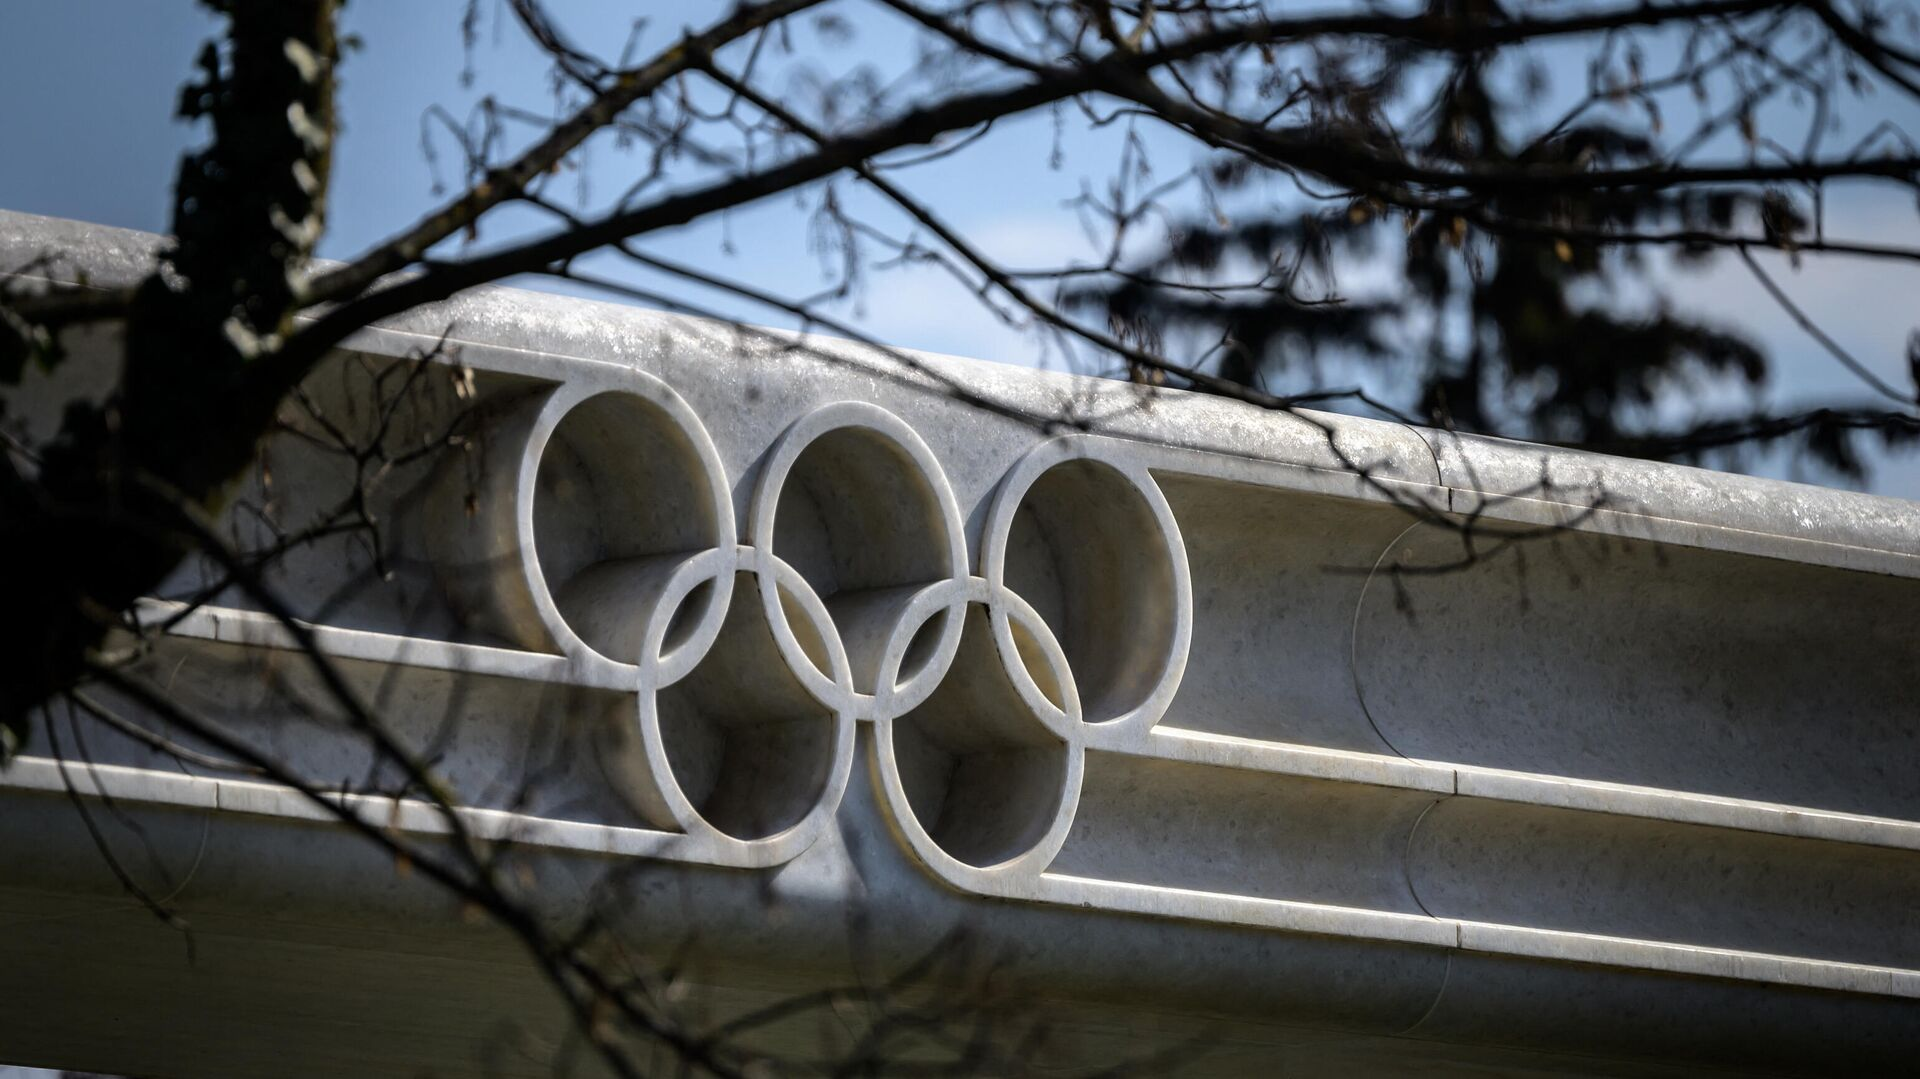 A picture taken on March 8, 2021 in Lausanne shows the Olympic rings next to the headquarters of the International Olympic Committee (IOC) ahead of a session of the World's sport governing body held virtually. (Photo by Fabrice COFFRINI / AFP) - РИА Новости, 1920, 09.03.2021